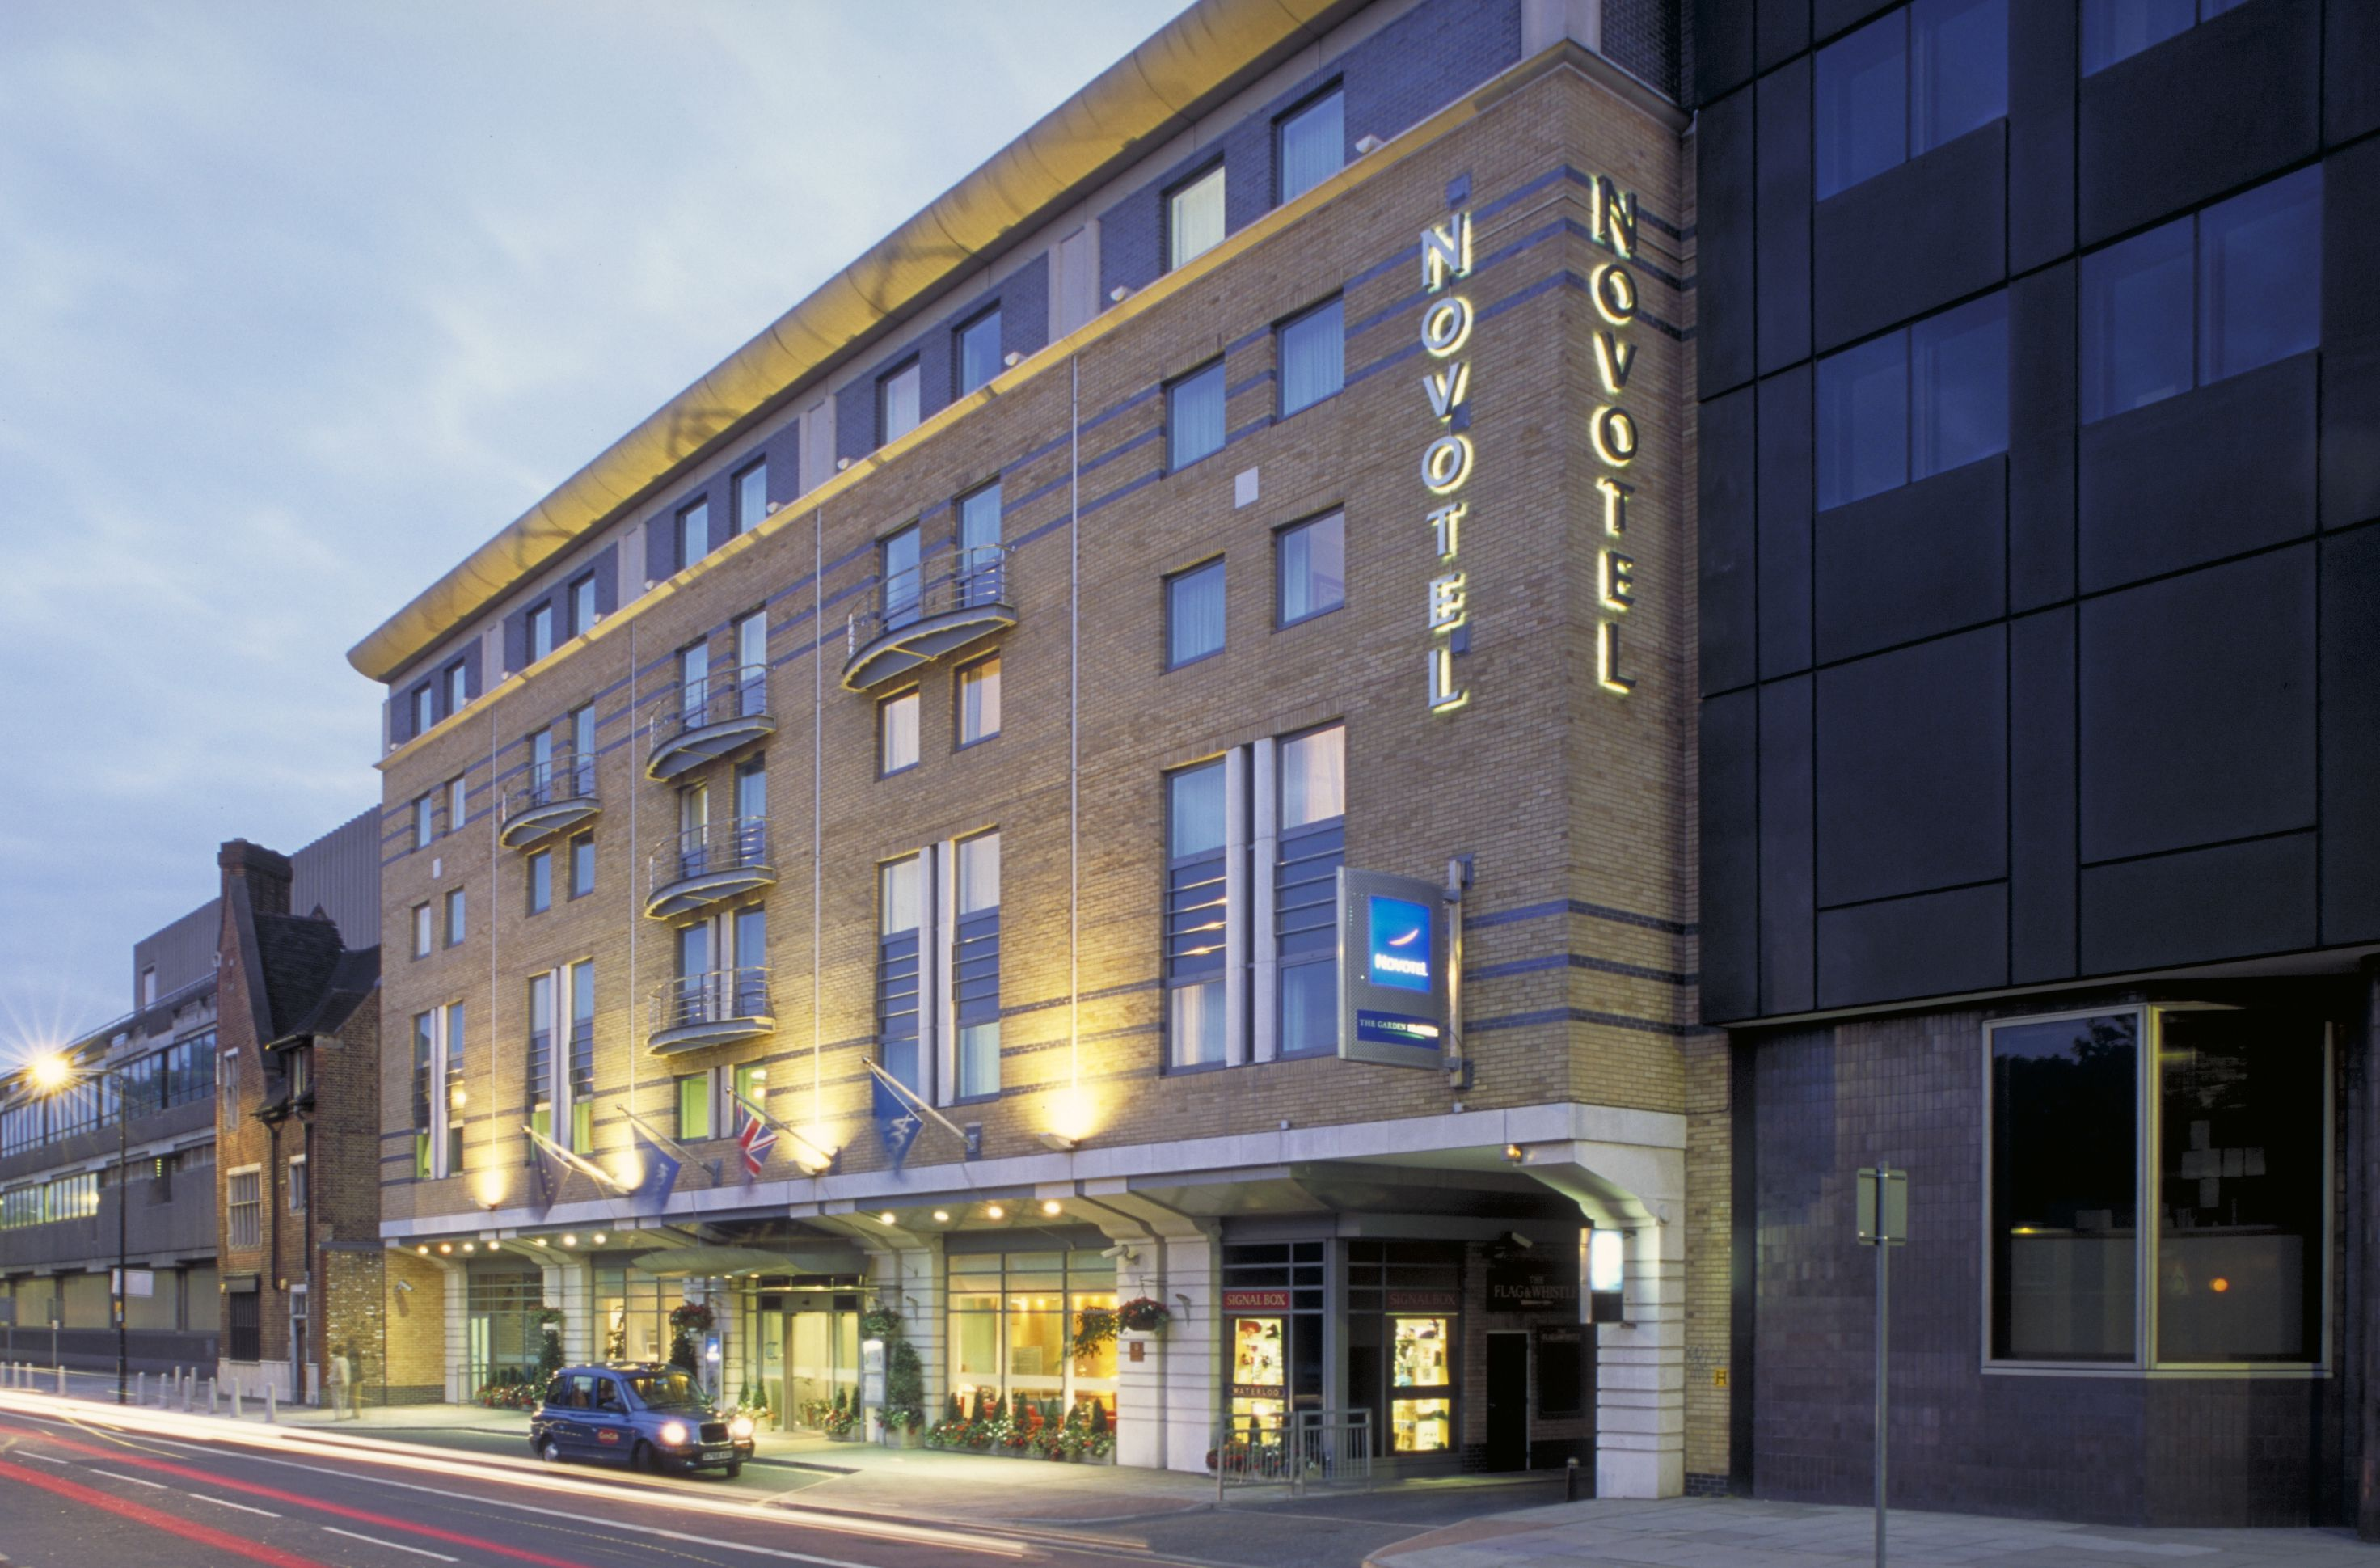 Novotel london waterloo hotel review for Hotel w londres